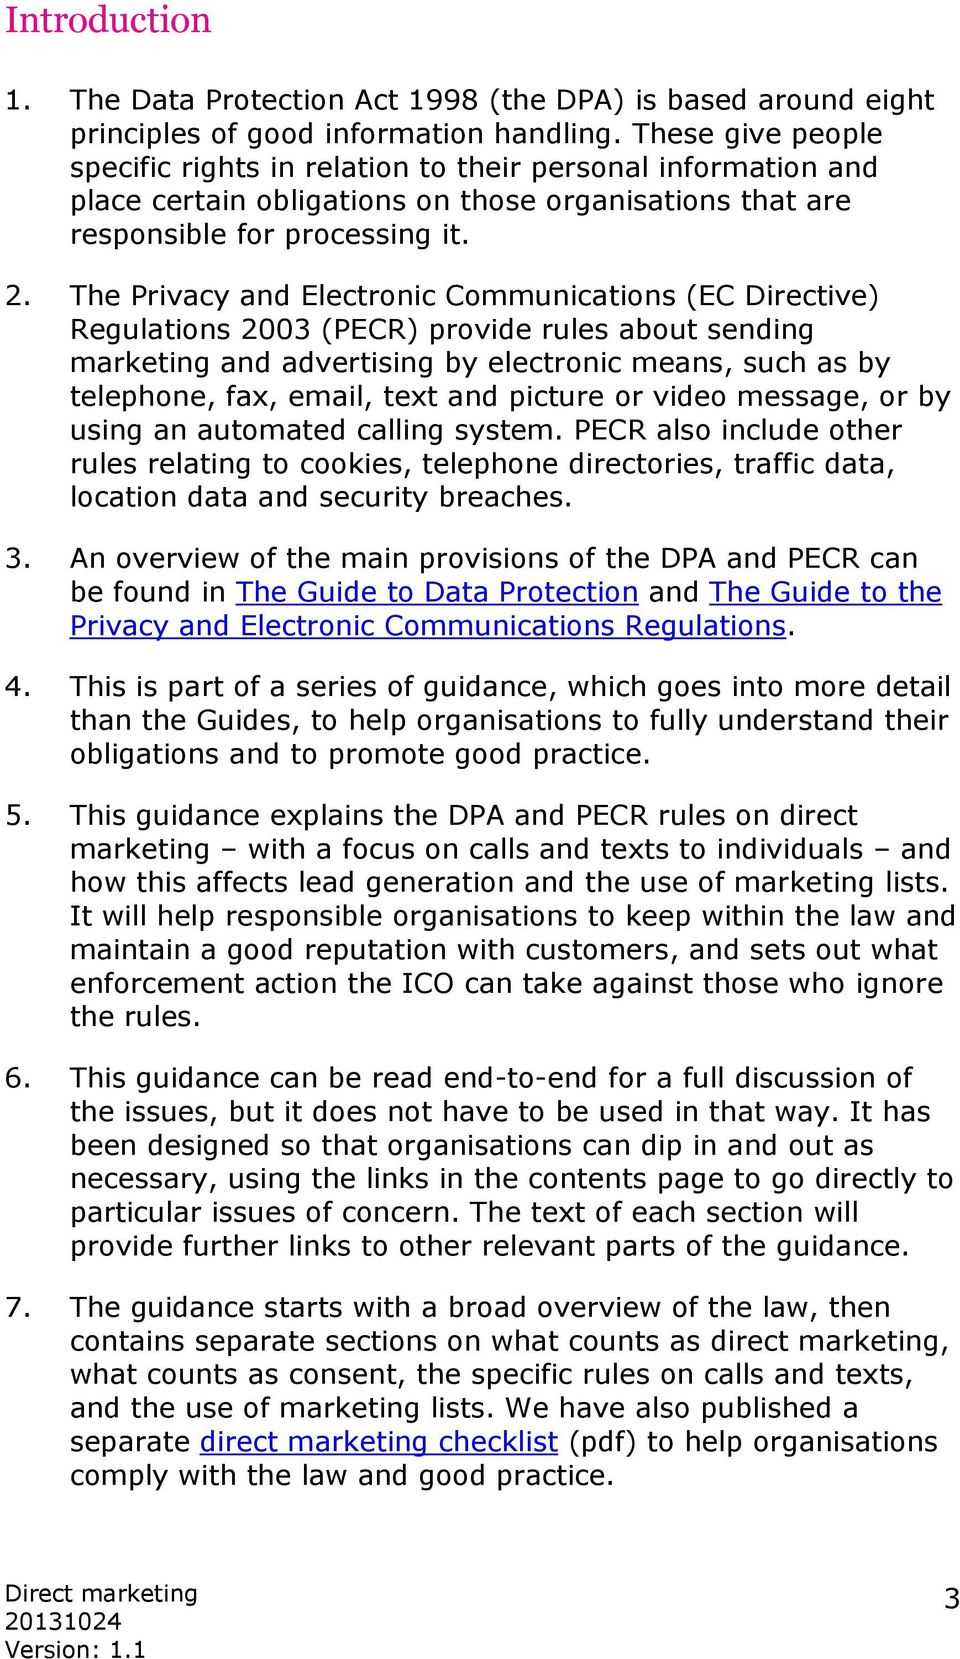 The Privacy and Electronic Communications (EC Directive) Regulations 2003 (PECR) provide rules about sending marketing and advertising by electronic means, such as by telephone, fax, email, text and